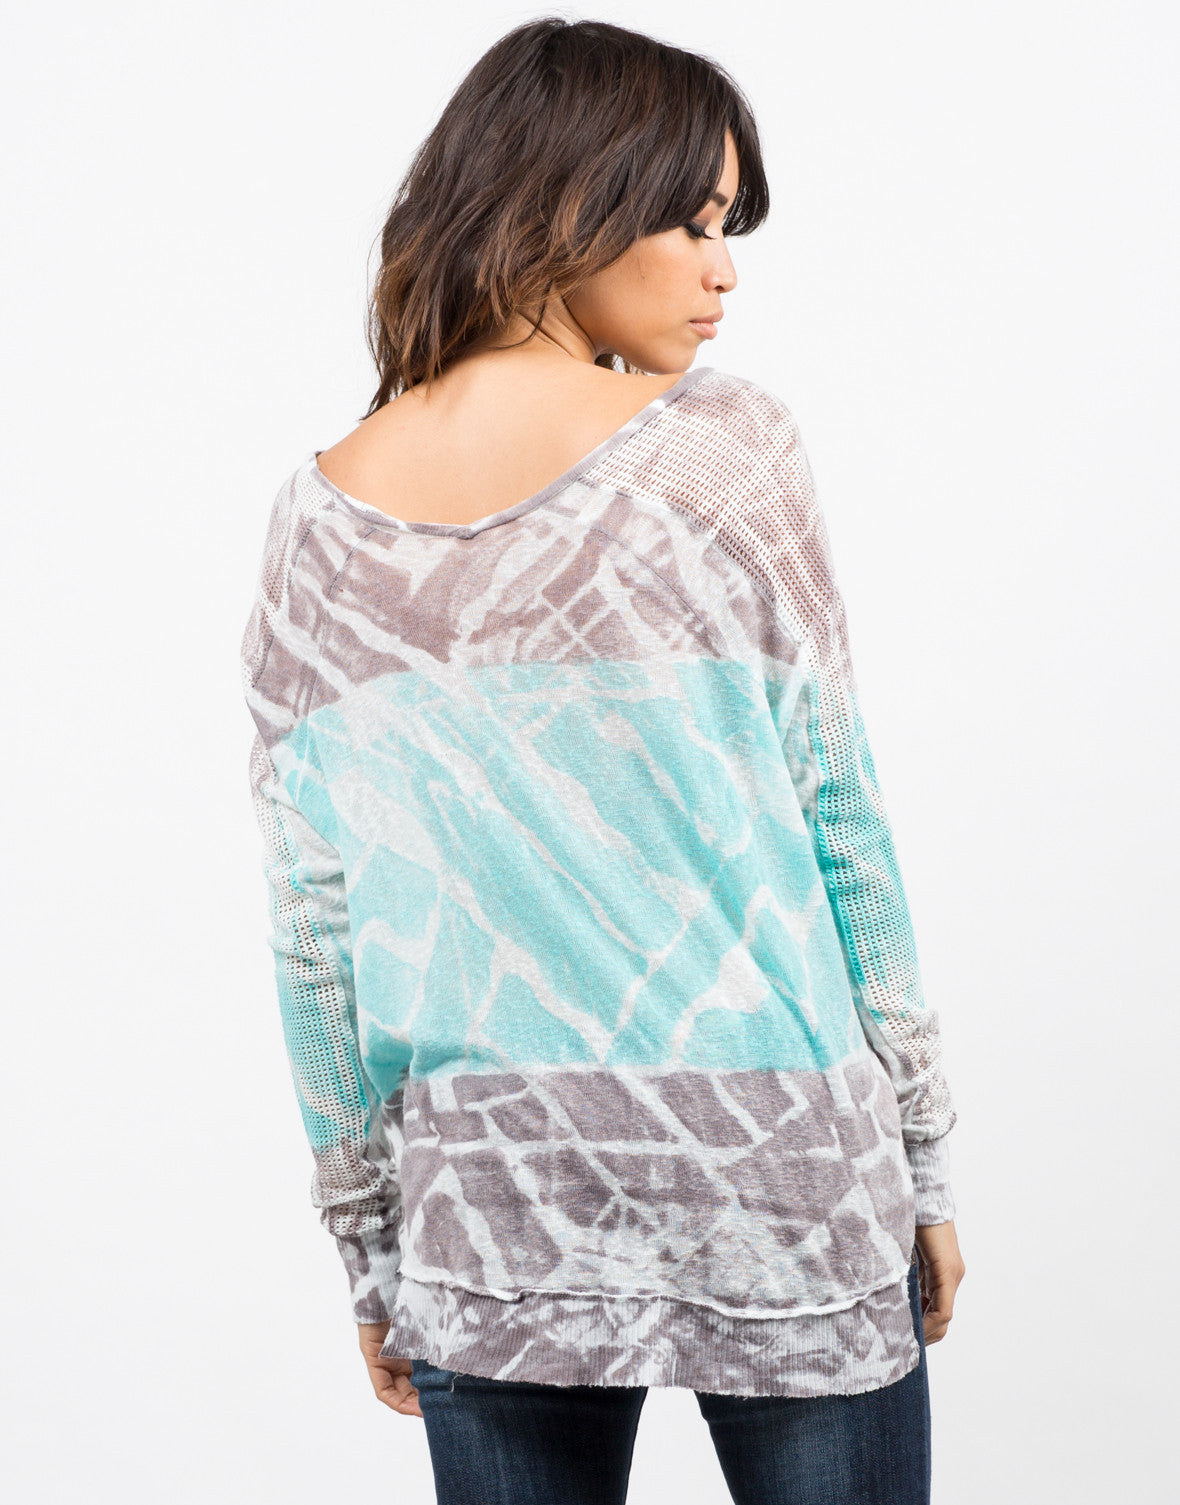 Back View of Netted Sleeves Tie Dye Top